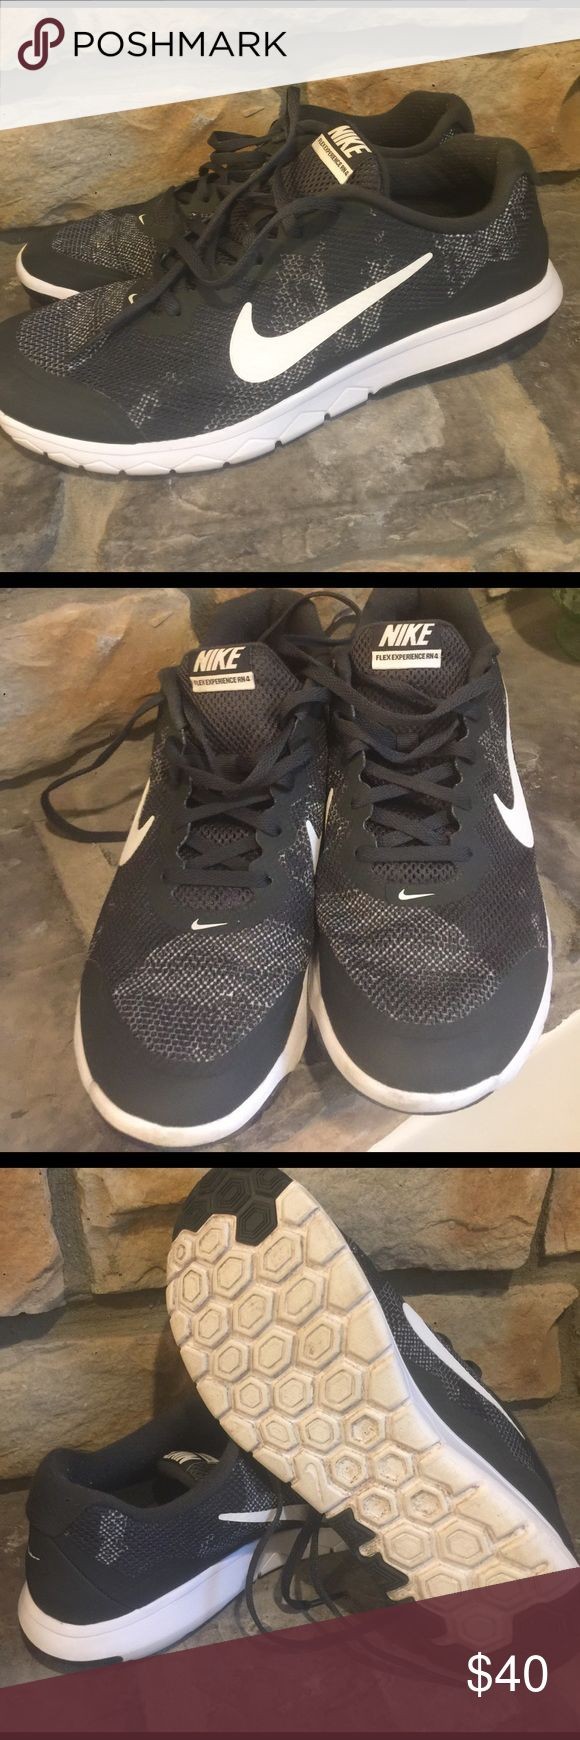 Nike Flex Experience RN 4 Men's Black and white Nike's. Gray condition. Size 10. Nike Shoes Athletic Shoes